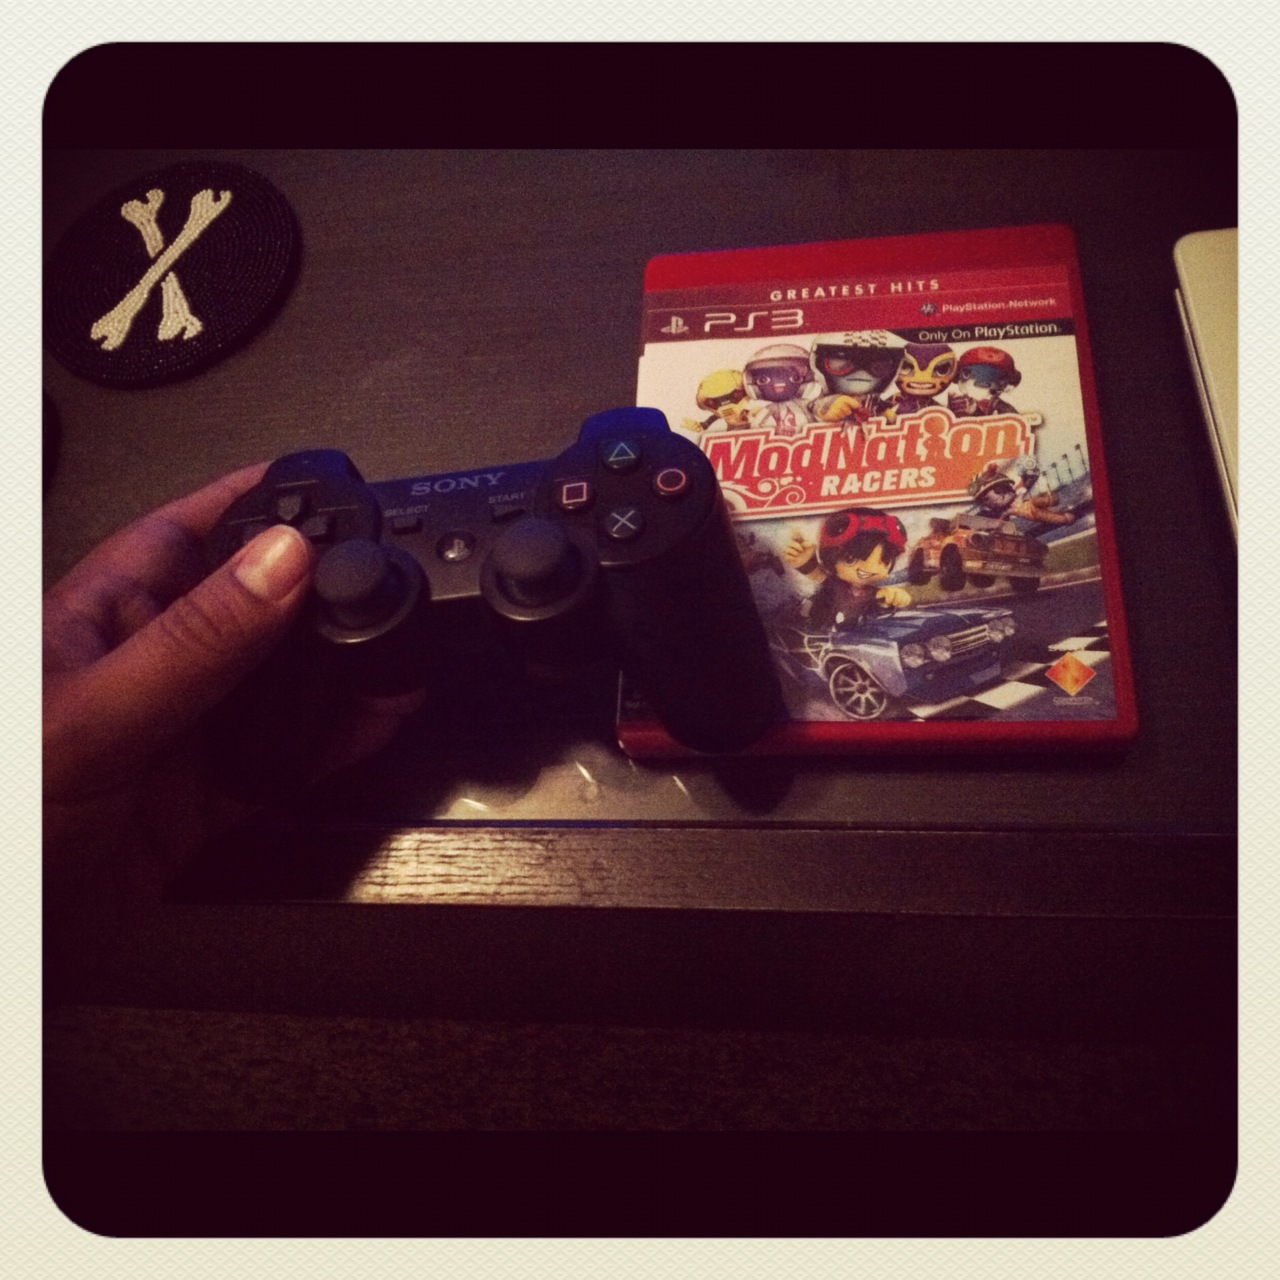 With the week coming to a close, Friday night turned out to be a quiet night in.  Took in some time playing a video game I've been playing a lot lately called : Modnation Racers